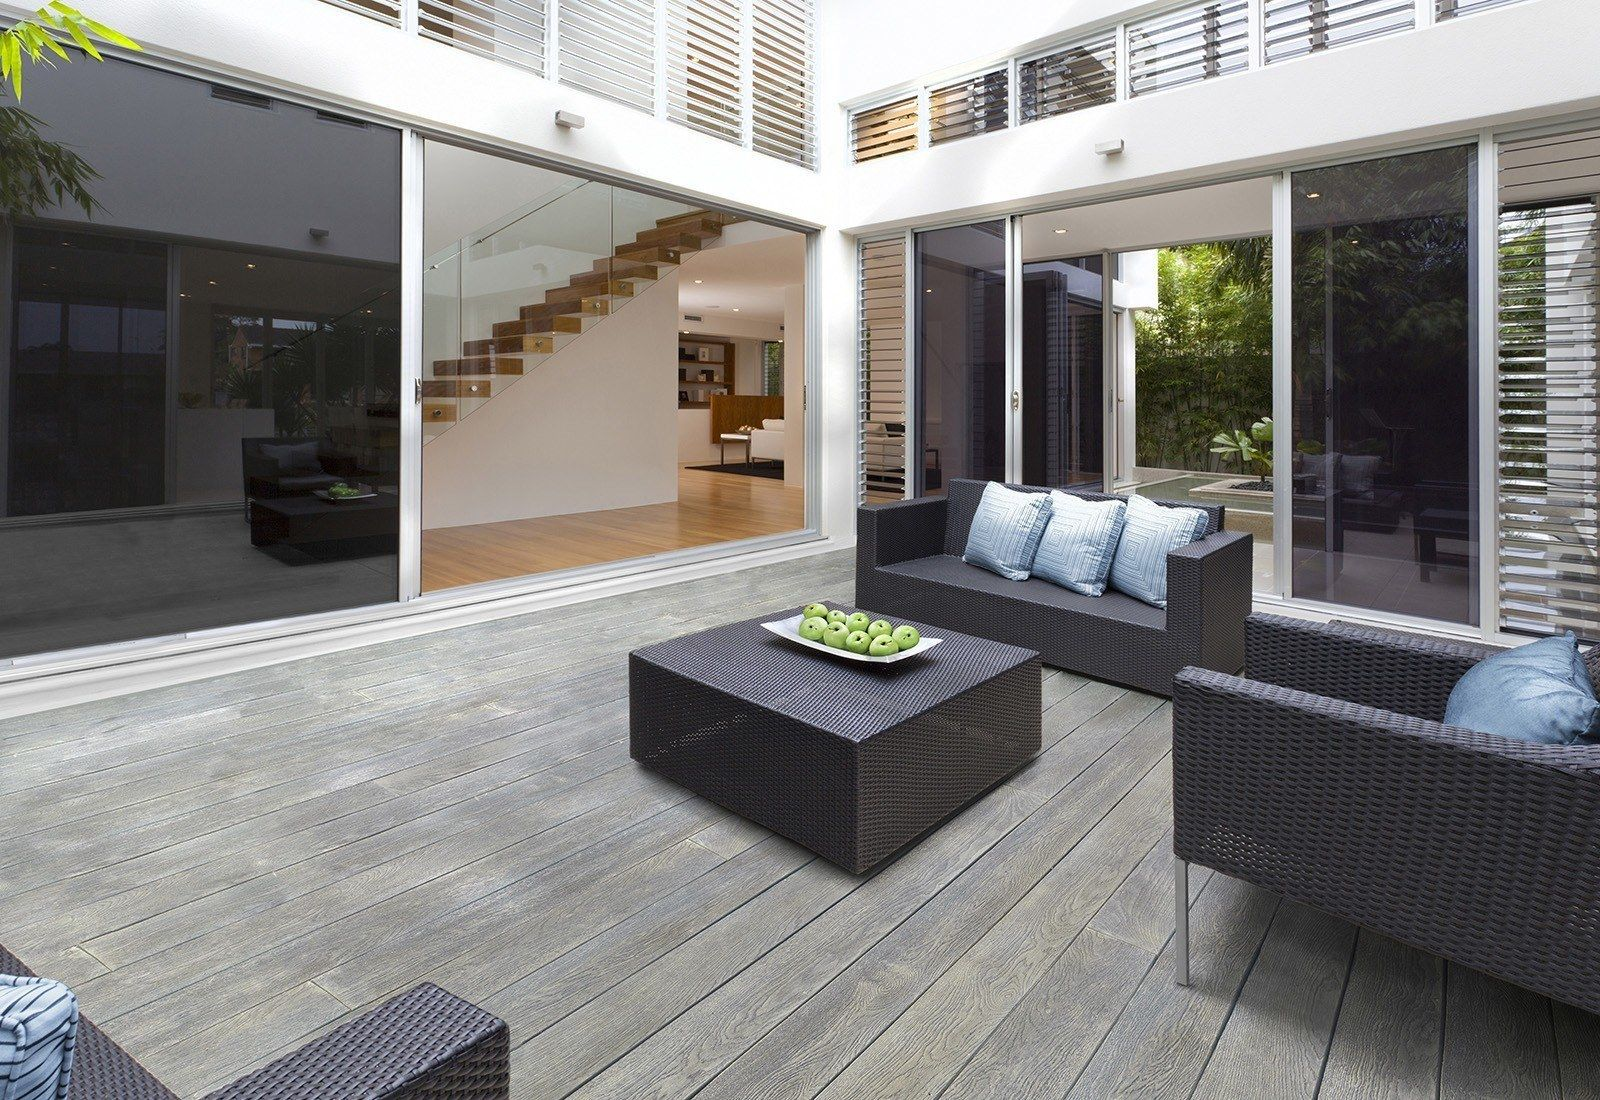 Millboard composite decking photo gallery residential projects